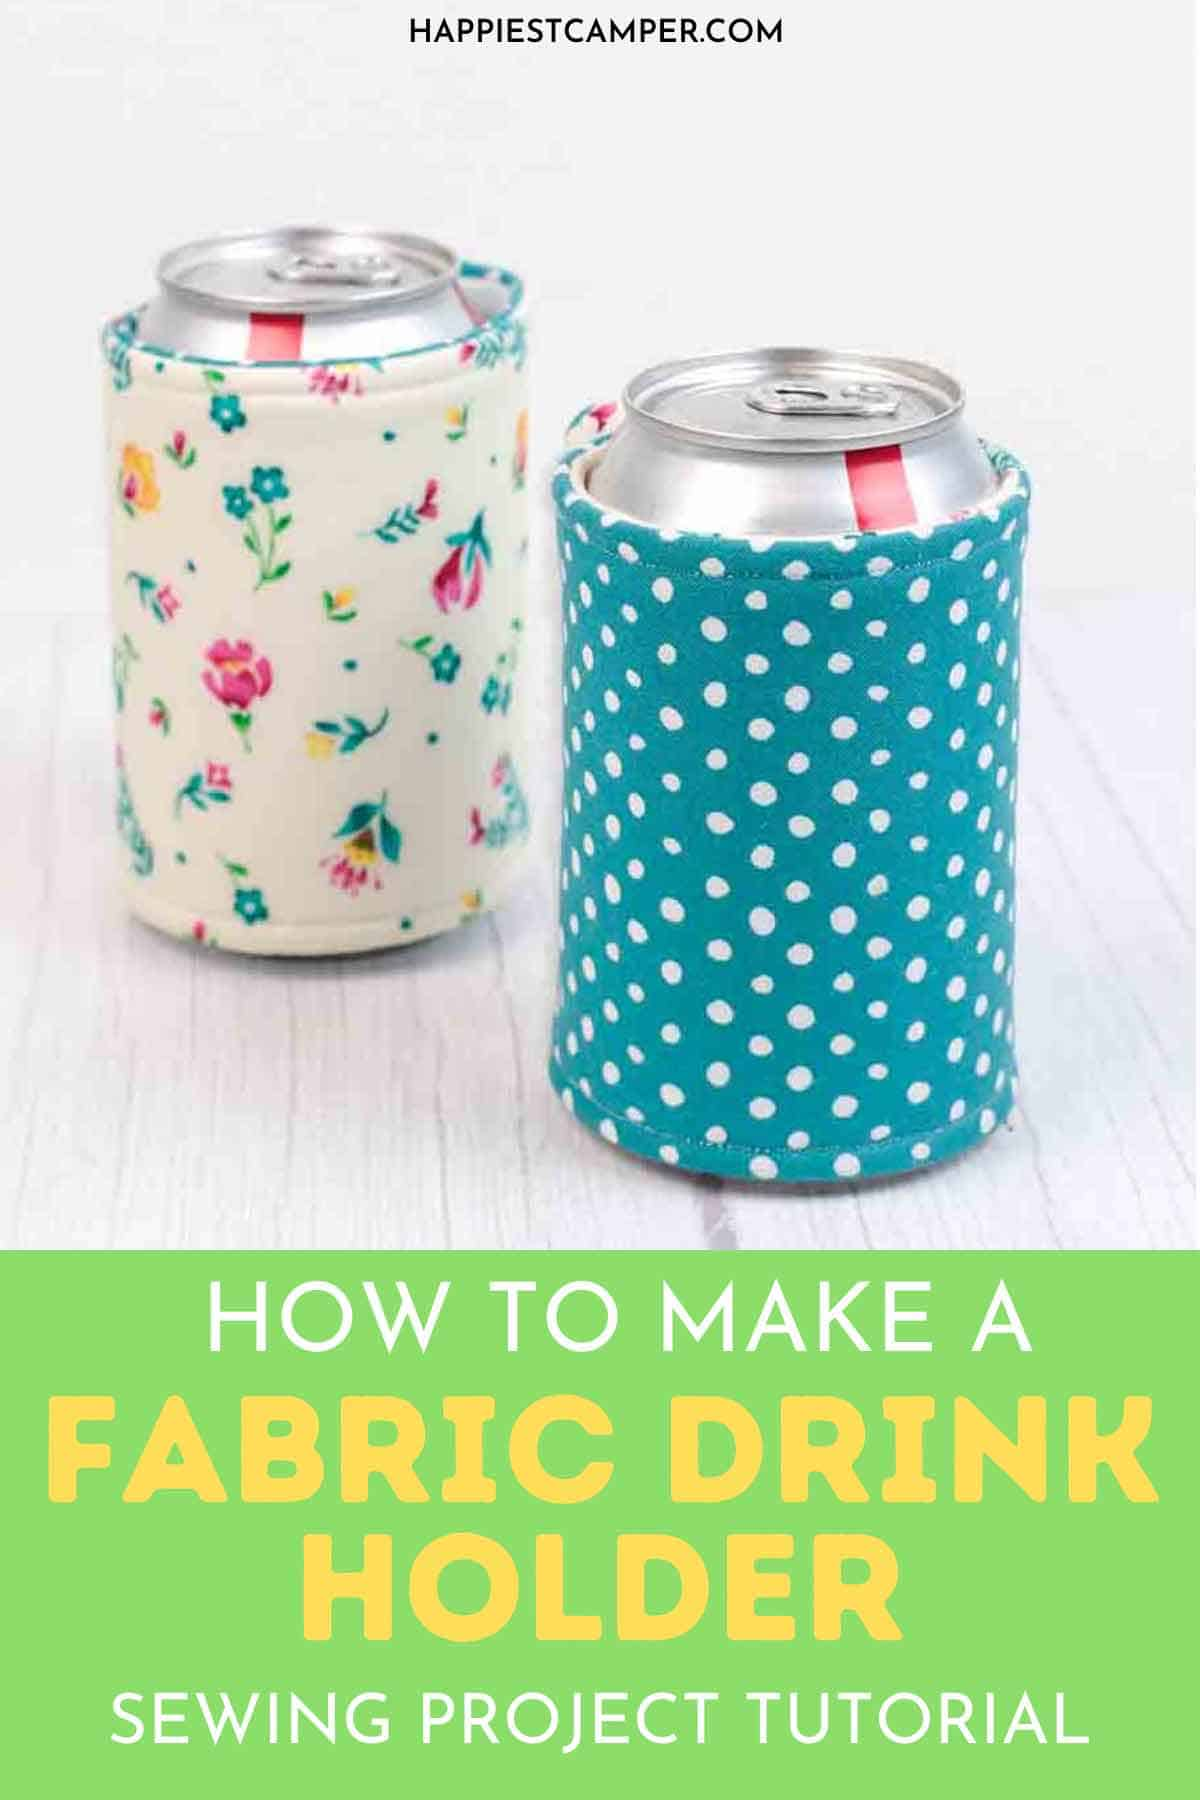 How To Make A Fabric Drink Holder